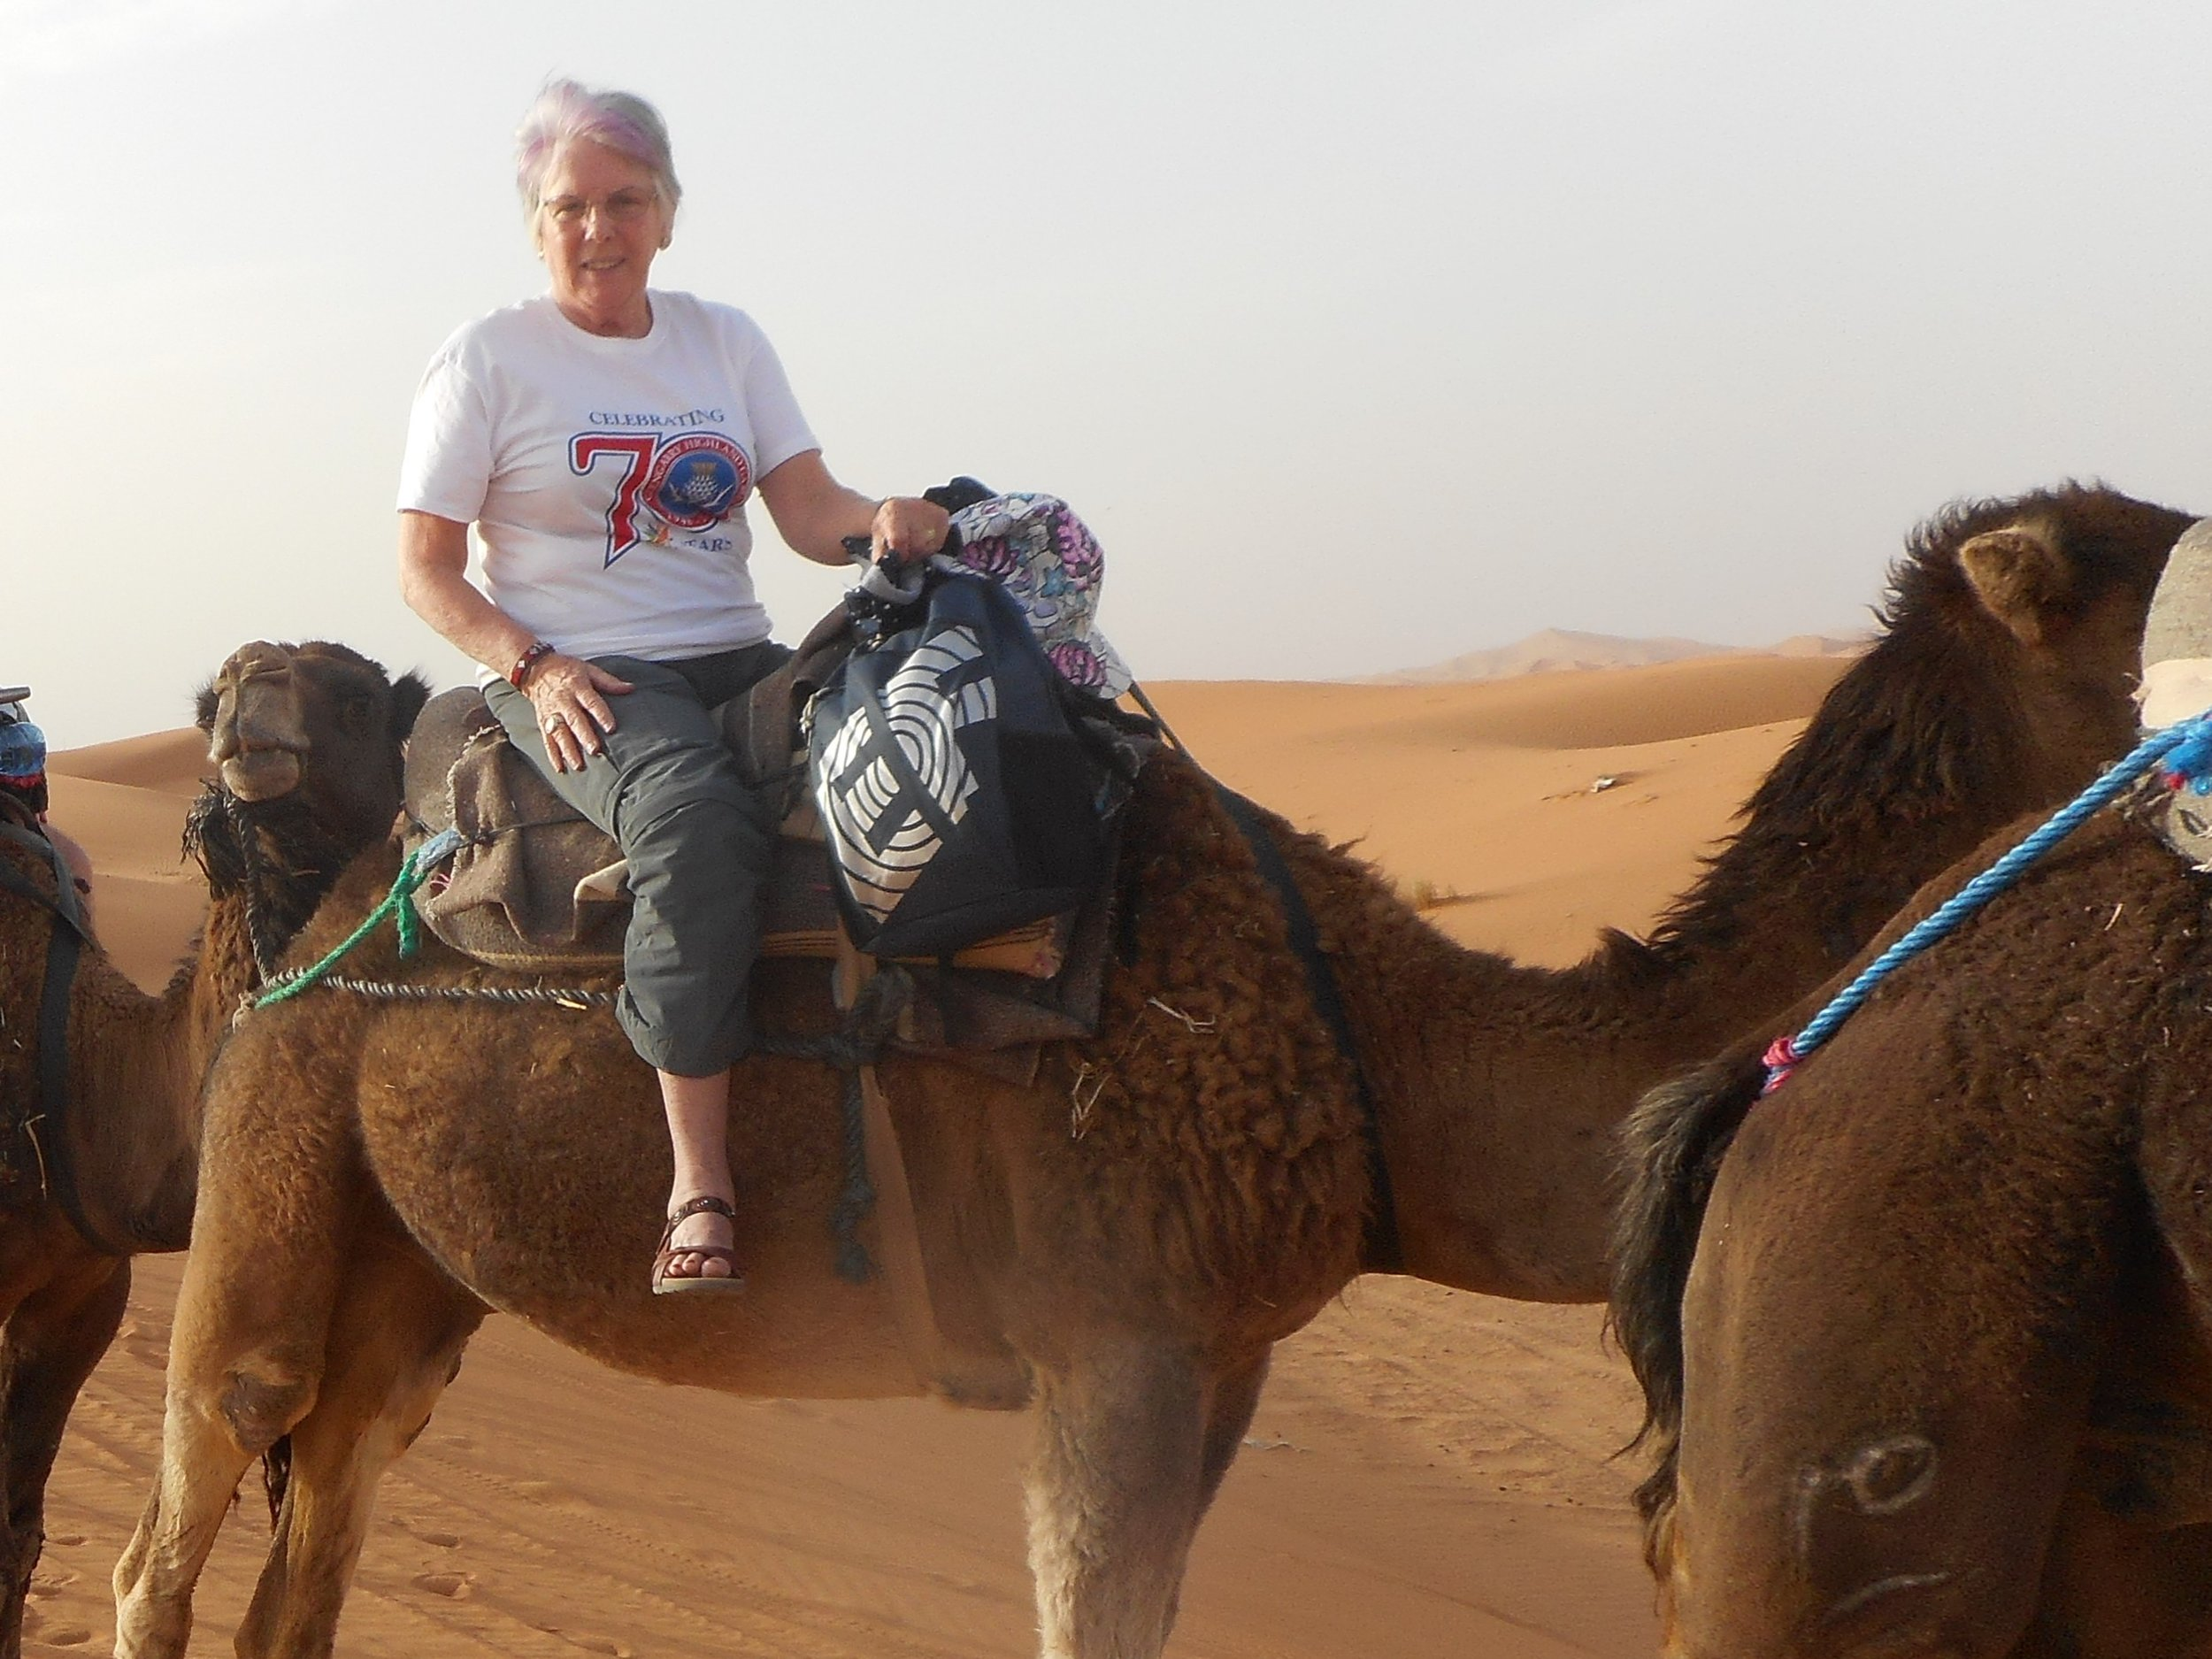 Judith MacLeod camel riding in the Sahara in Morocco